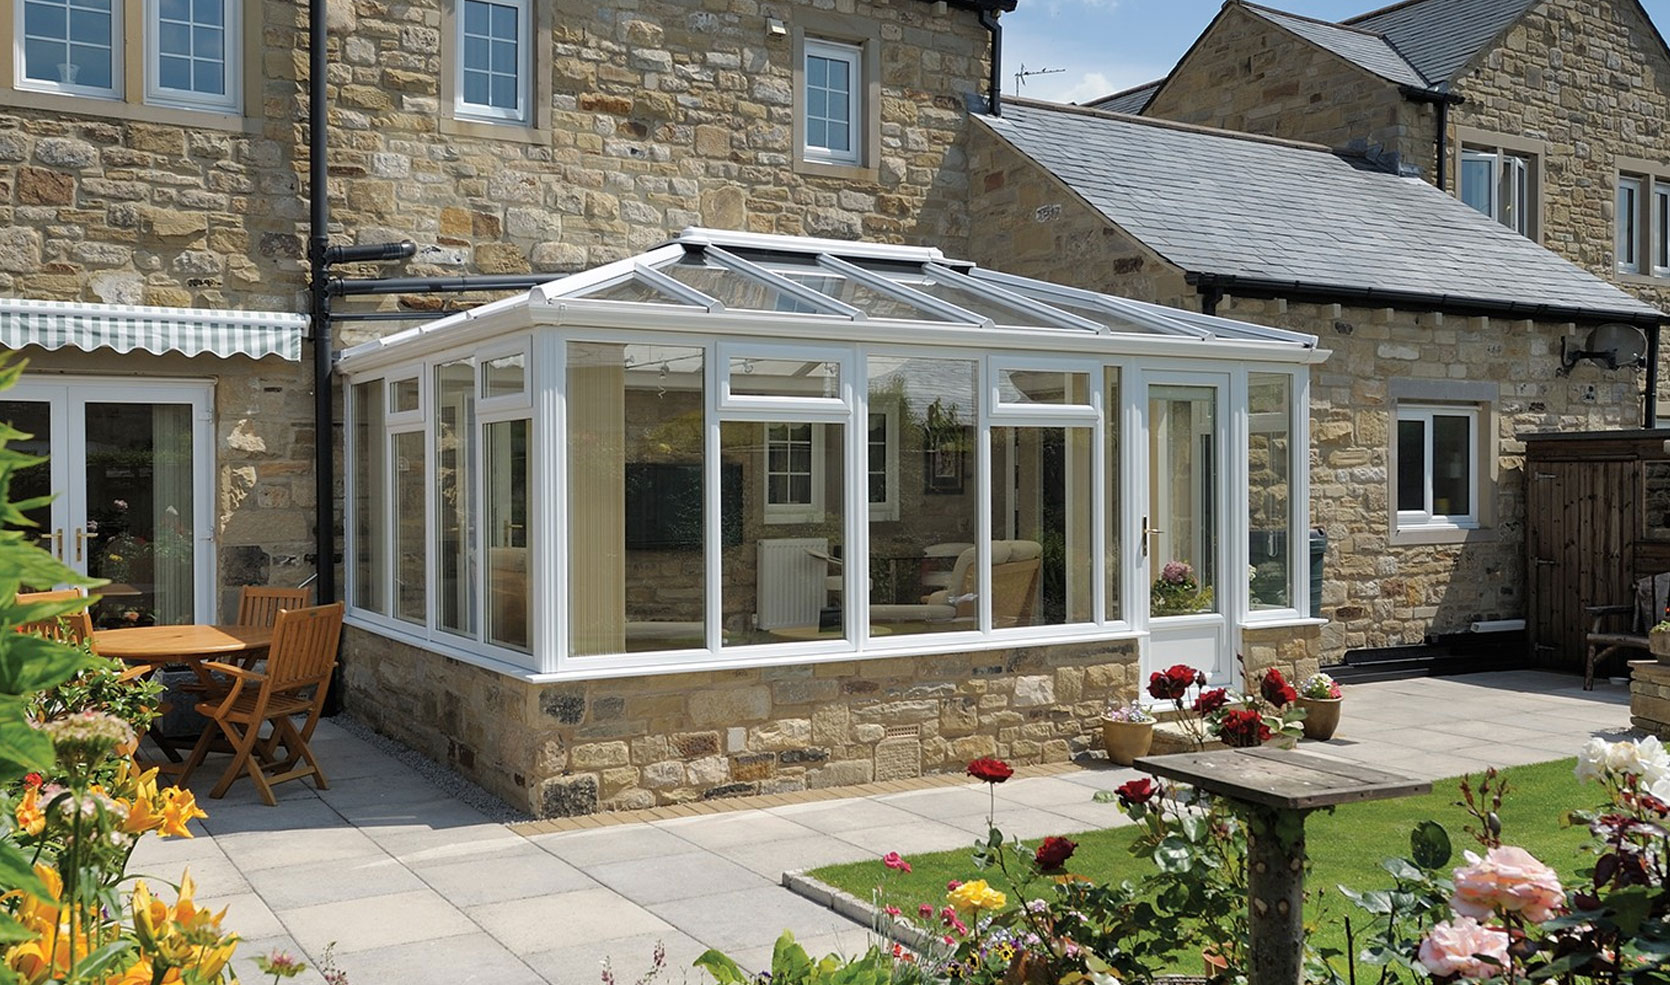 Shaws of brighton conservatories and orangeries